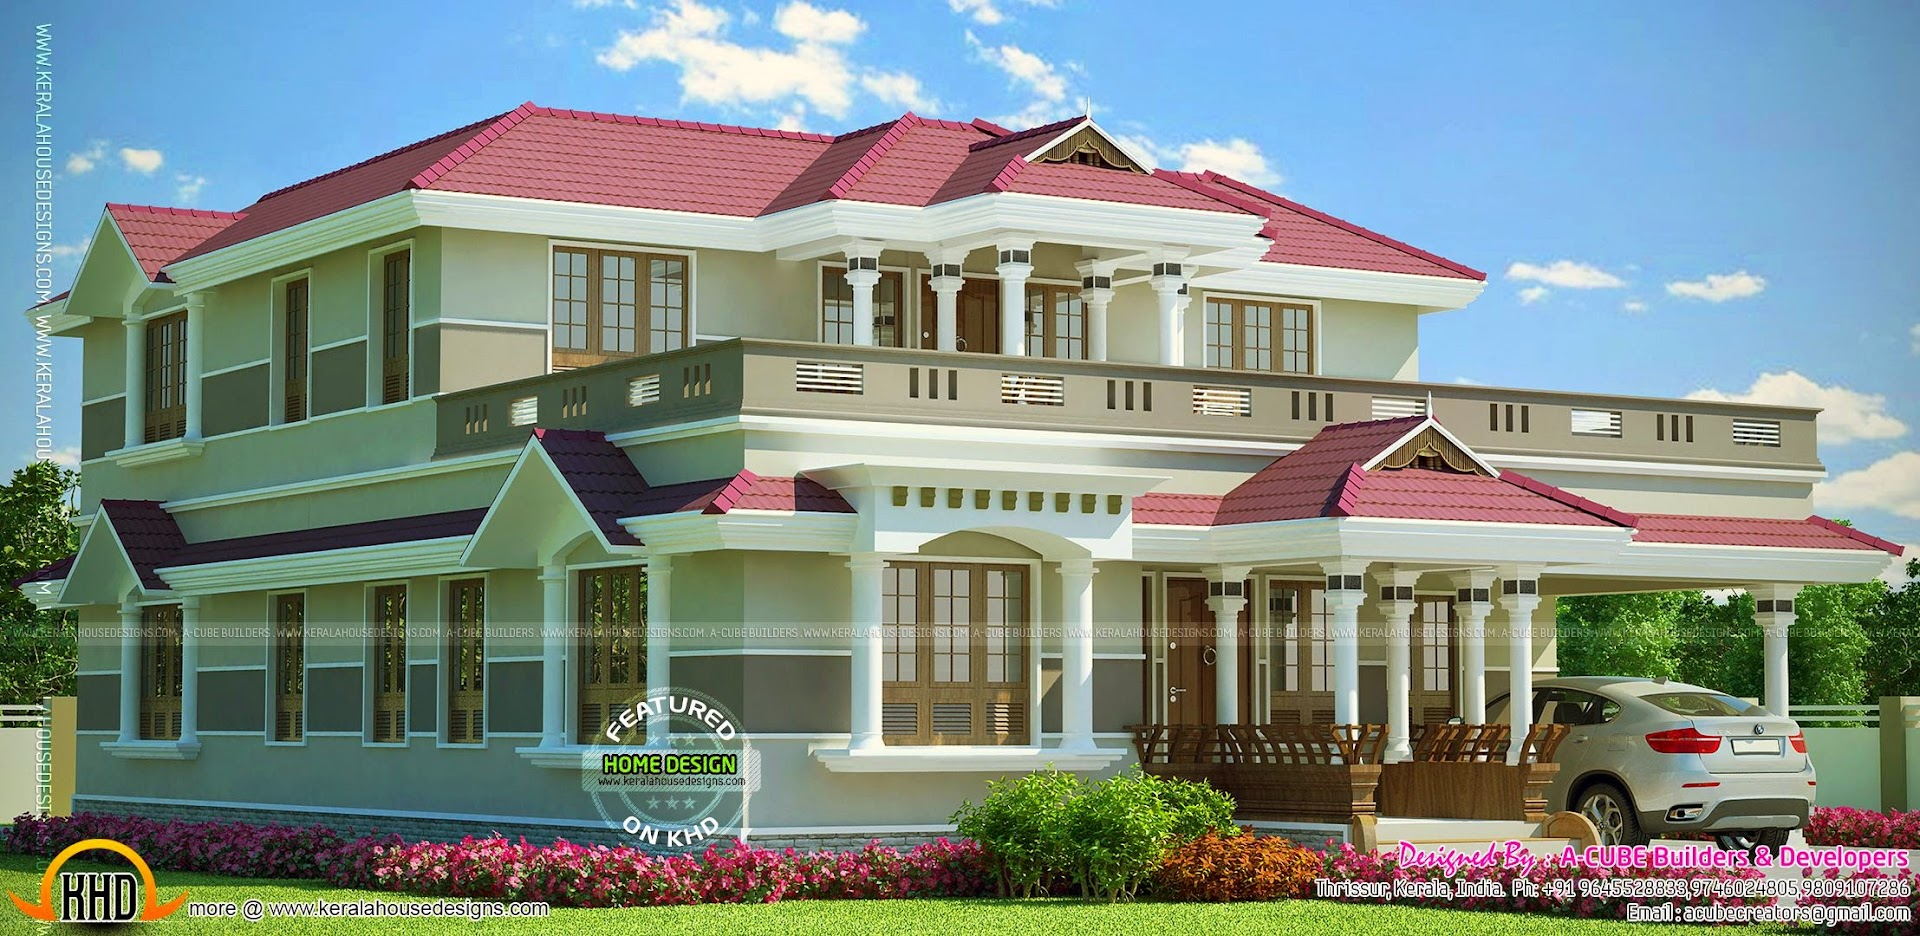 Remarkable Kerala Style Home Plans Kerala Lets Download House Plan Ideas Largest Home Design Picture Inspirations Pitcheantrous